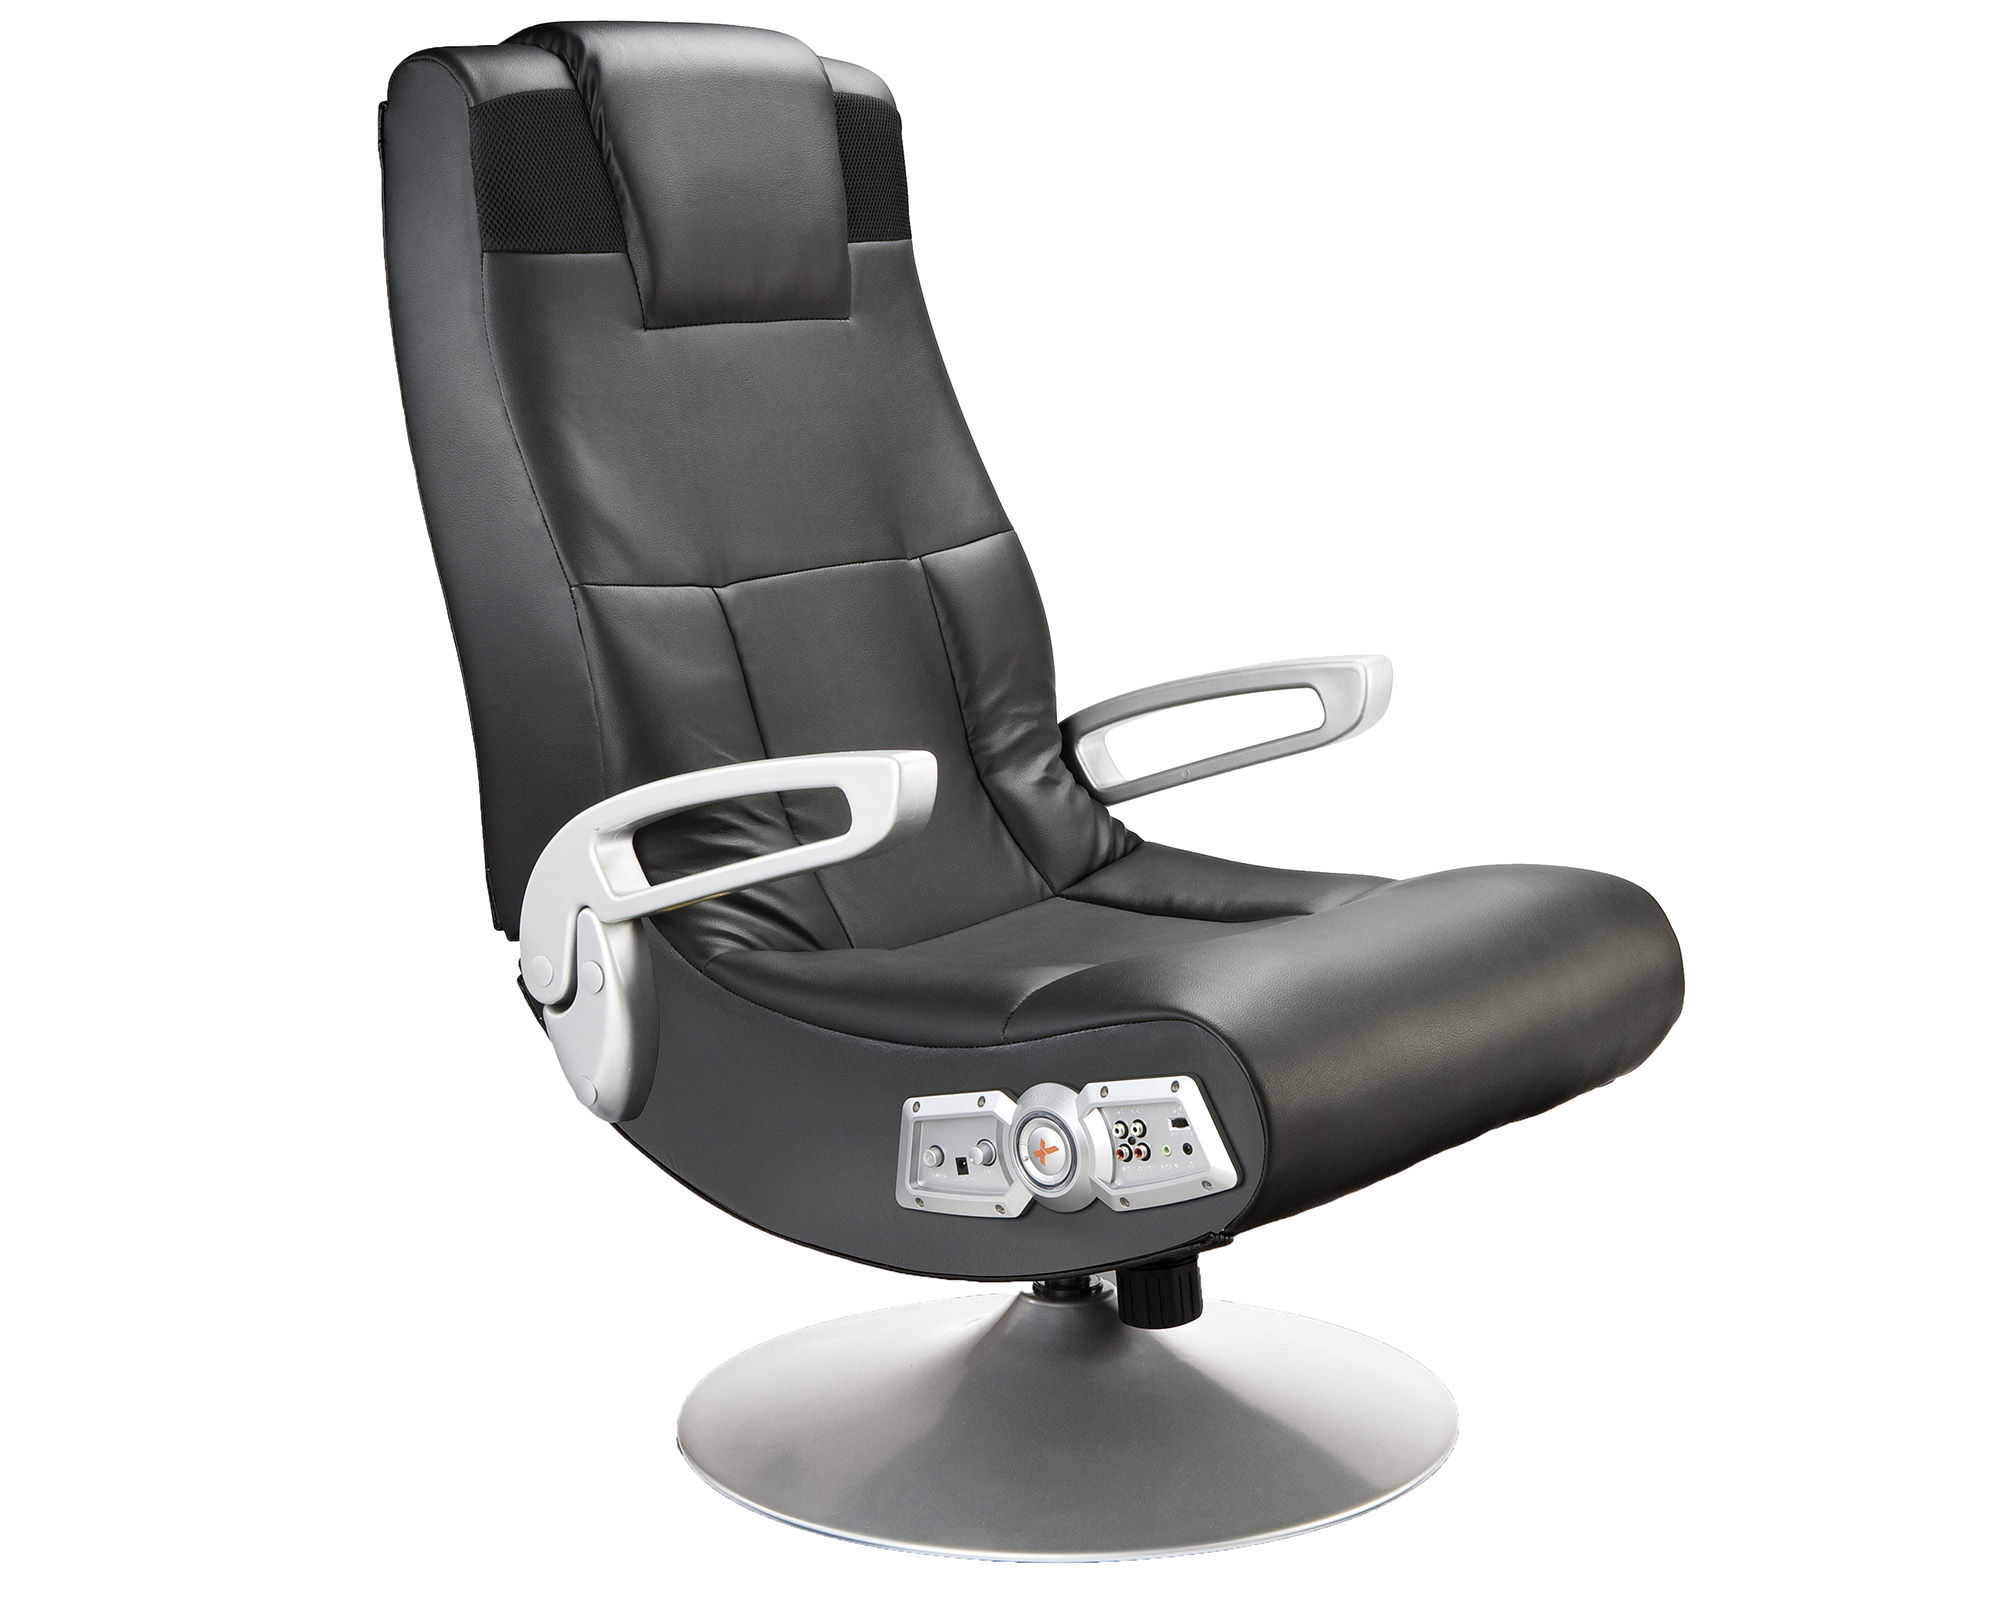 X-Pedestal Rocker 2.1 Audio Gaming Chair